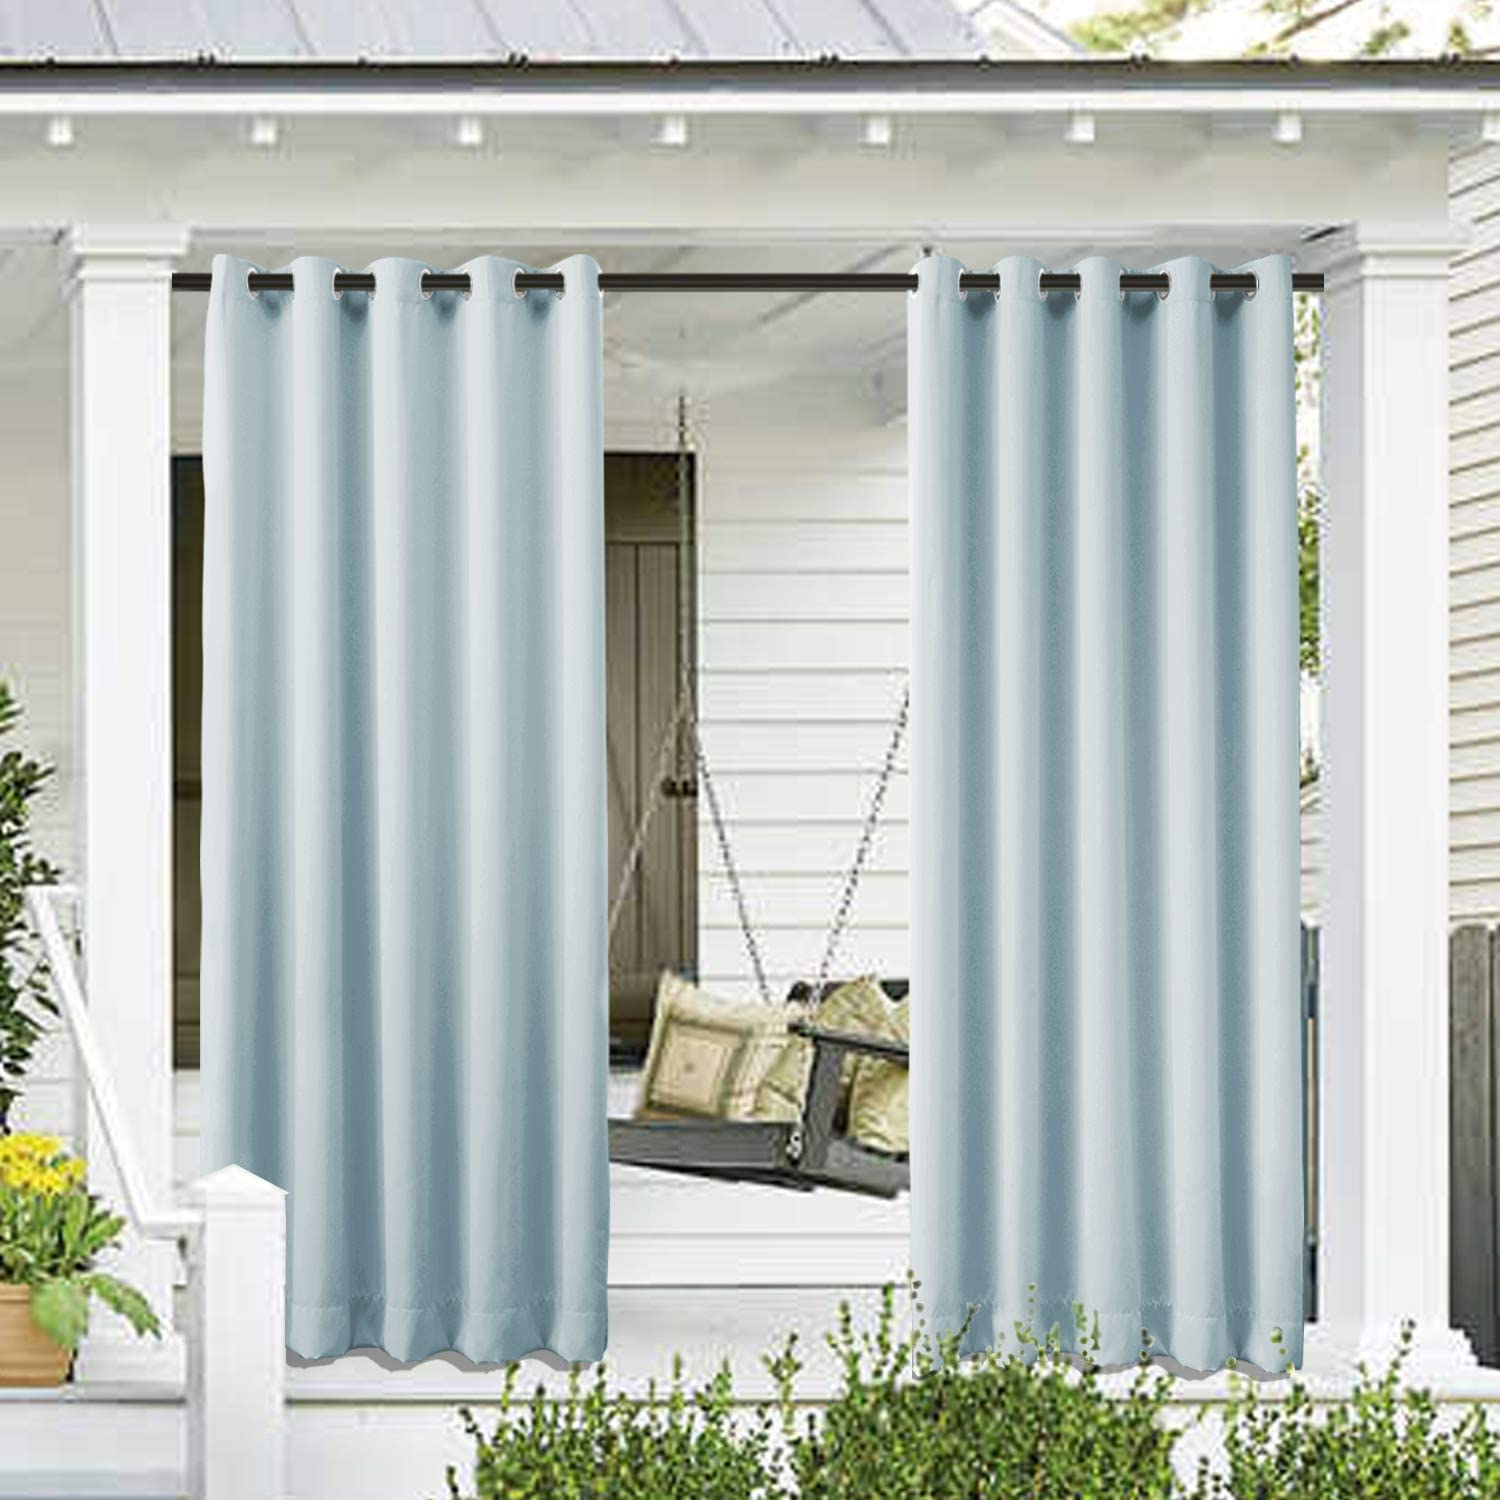 Beach Home 1 Panel Cololeaf Outdoor Curtains for Patio Waterproof 108 inches Solid Cabana Grommet Top Window Curtain Panel for Patio Dock Gazebo Wheat 52 Wx108 L Inch Porch Pergola